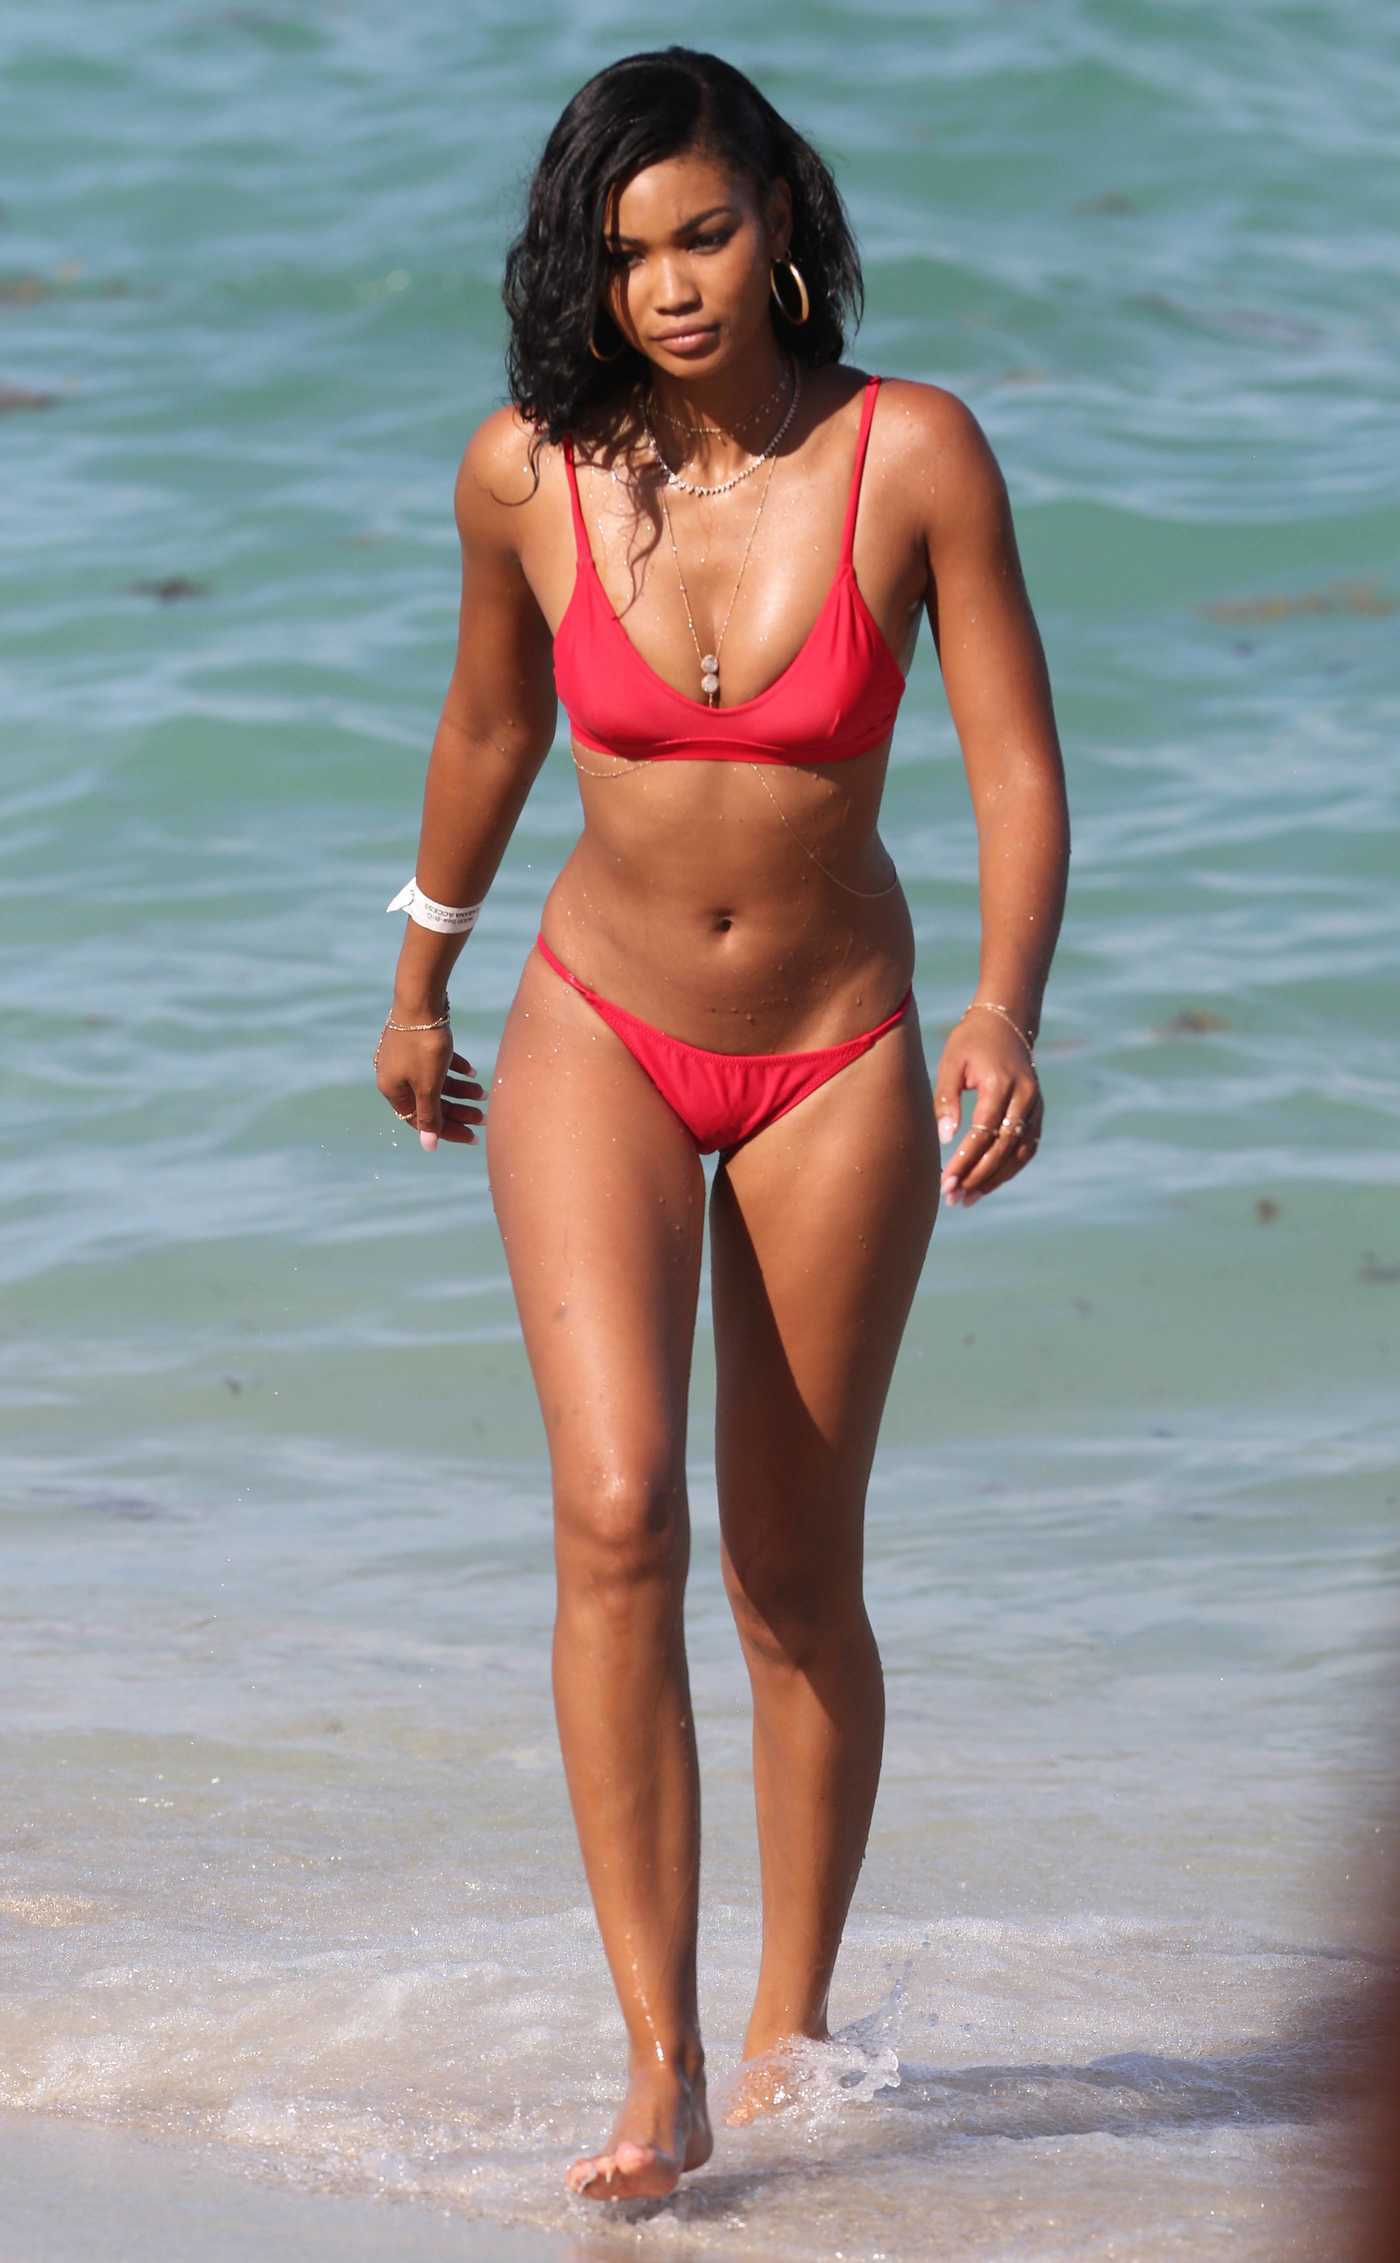 Chanel Iman Wears a Red Bikini at the Beach in Miami 07/01/2017